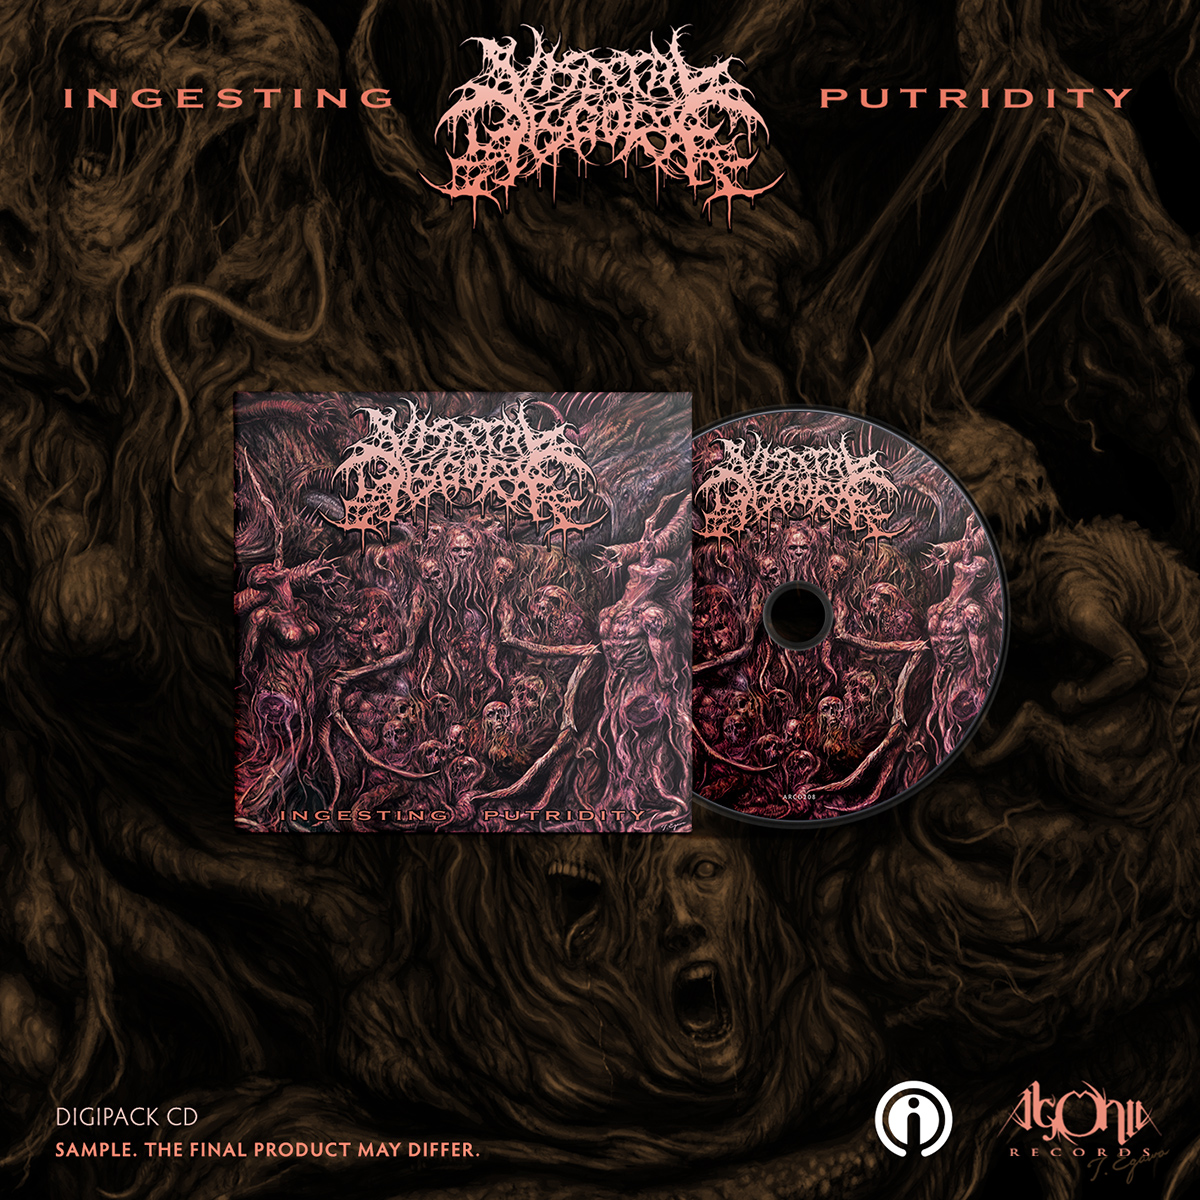 Ingesting Putridity Digipak + Tee Bundle